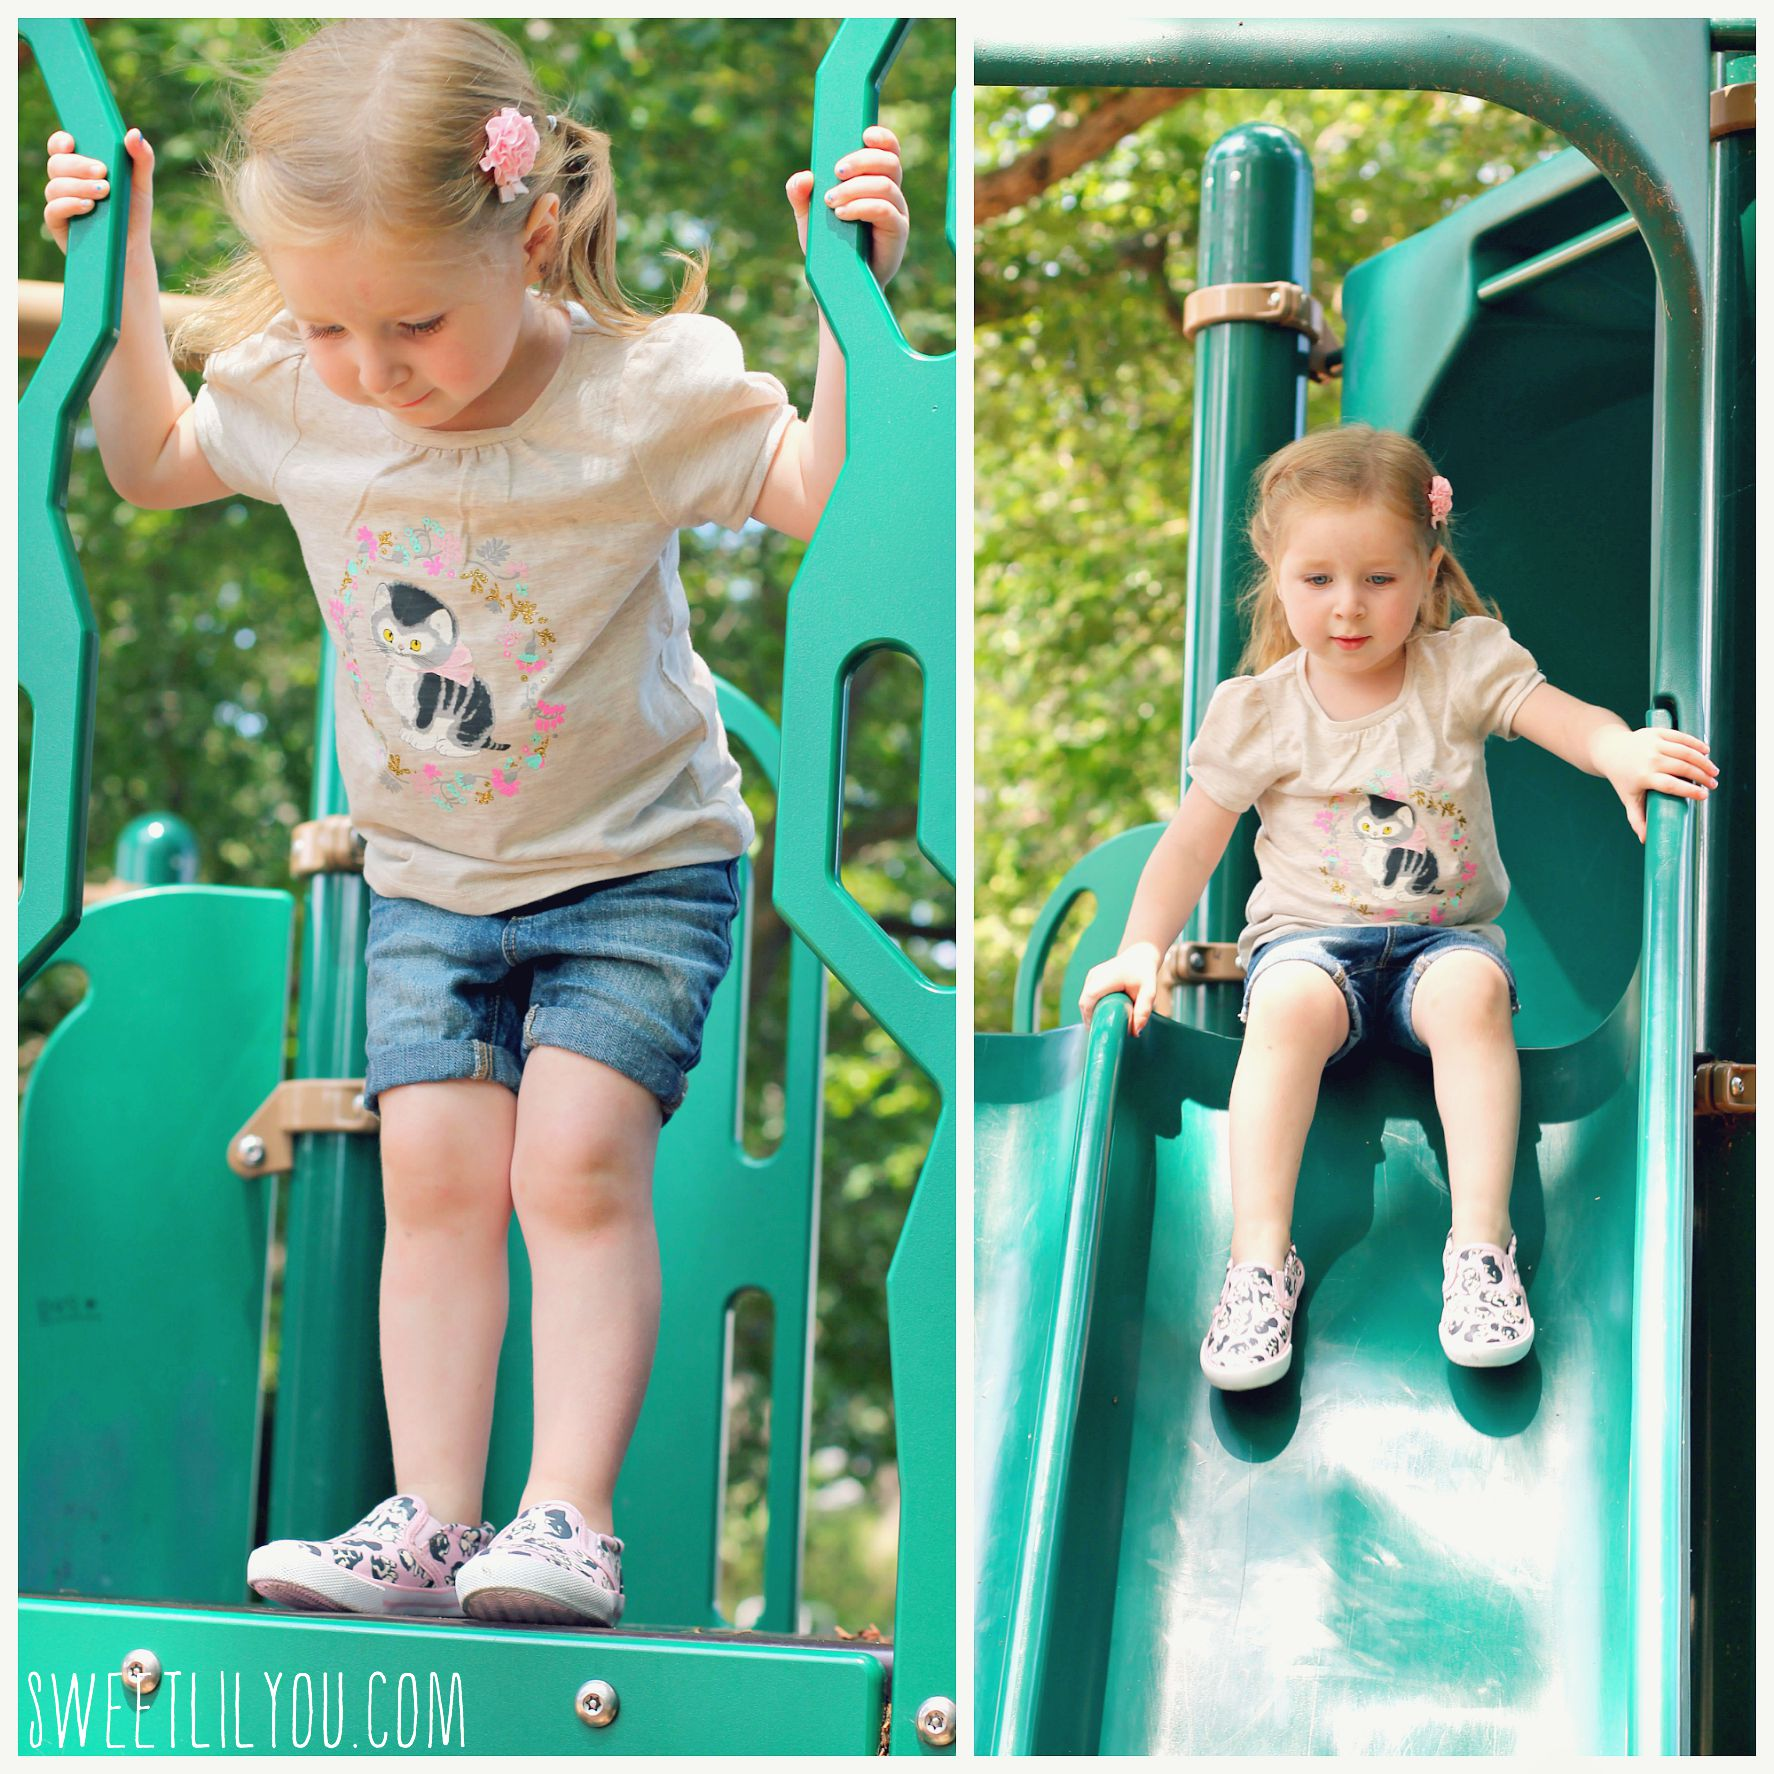 1030b3fcc A pretty dress for the first day or any special occasion, tees for  play-dates and playground fun, adorable accessories, and some stores even  have ...